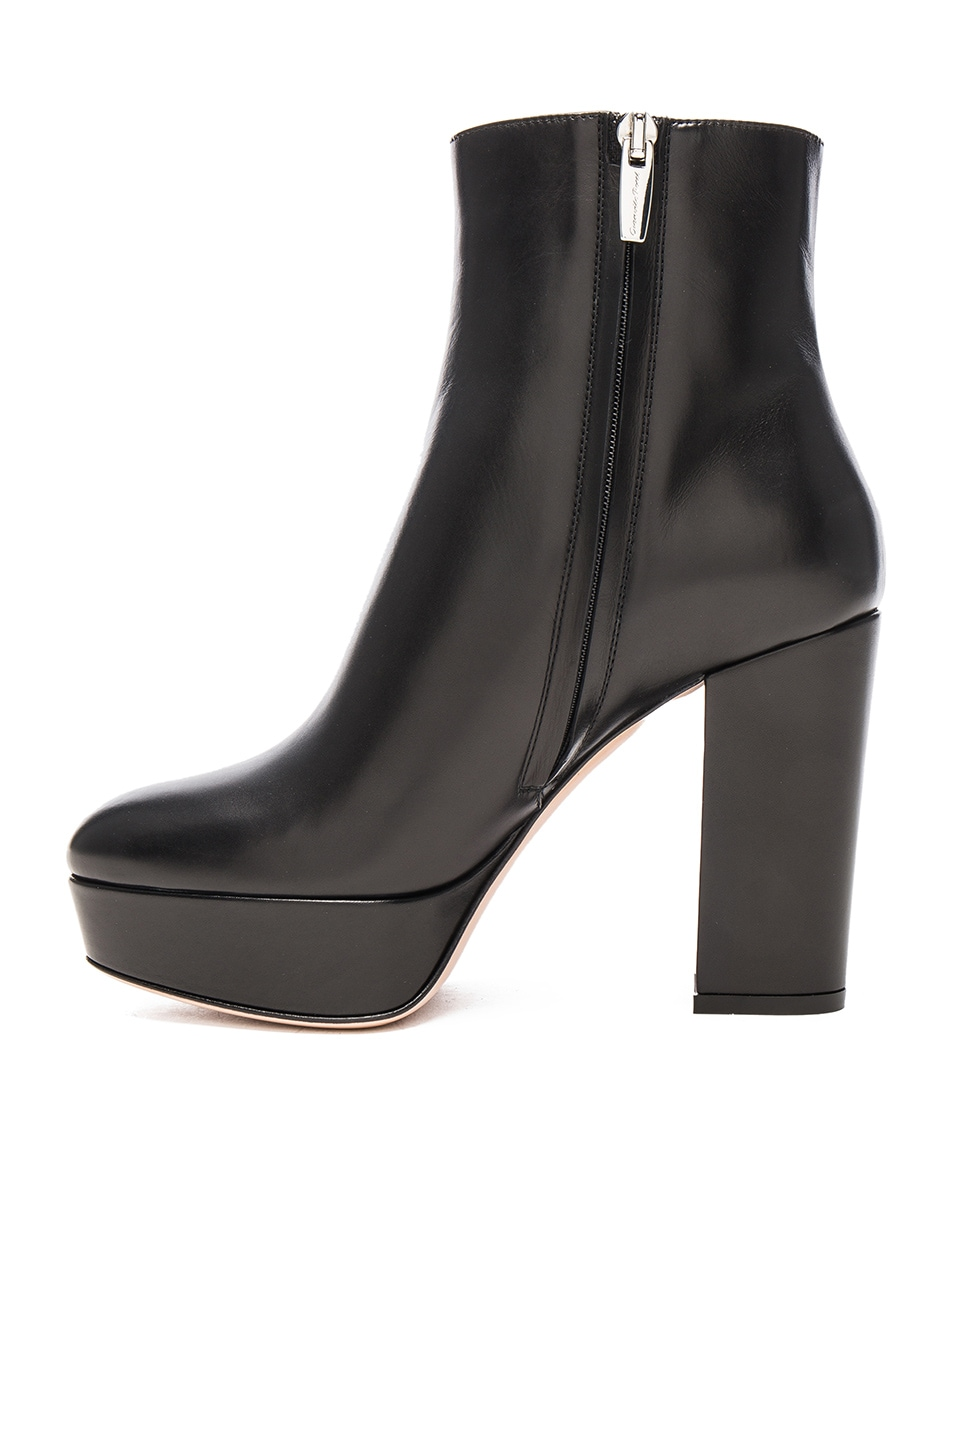 Image 5 of Gianvito Rossi Platform Leather Boots in Black